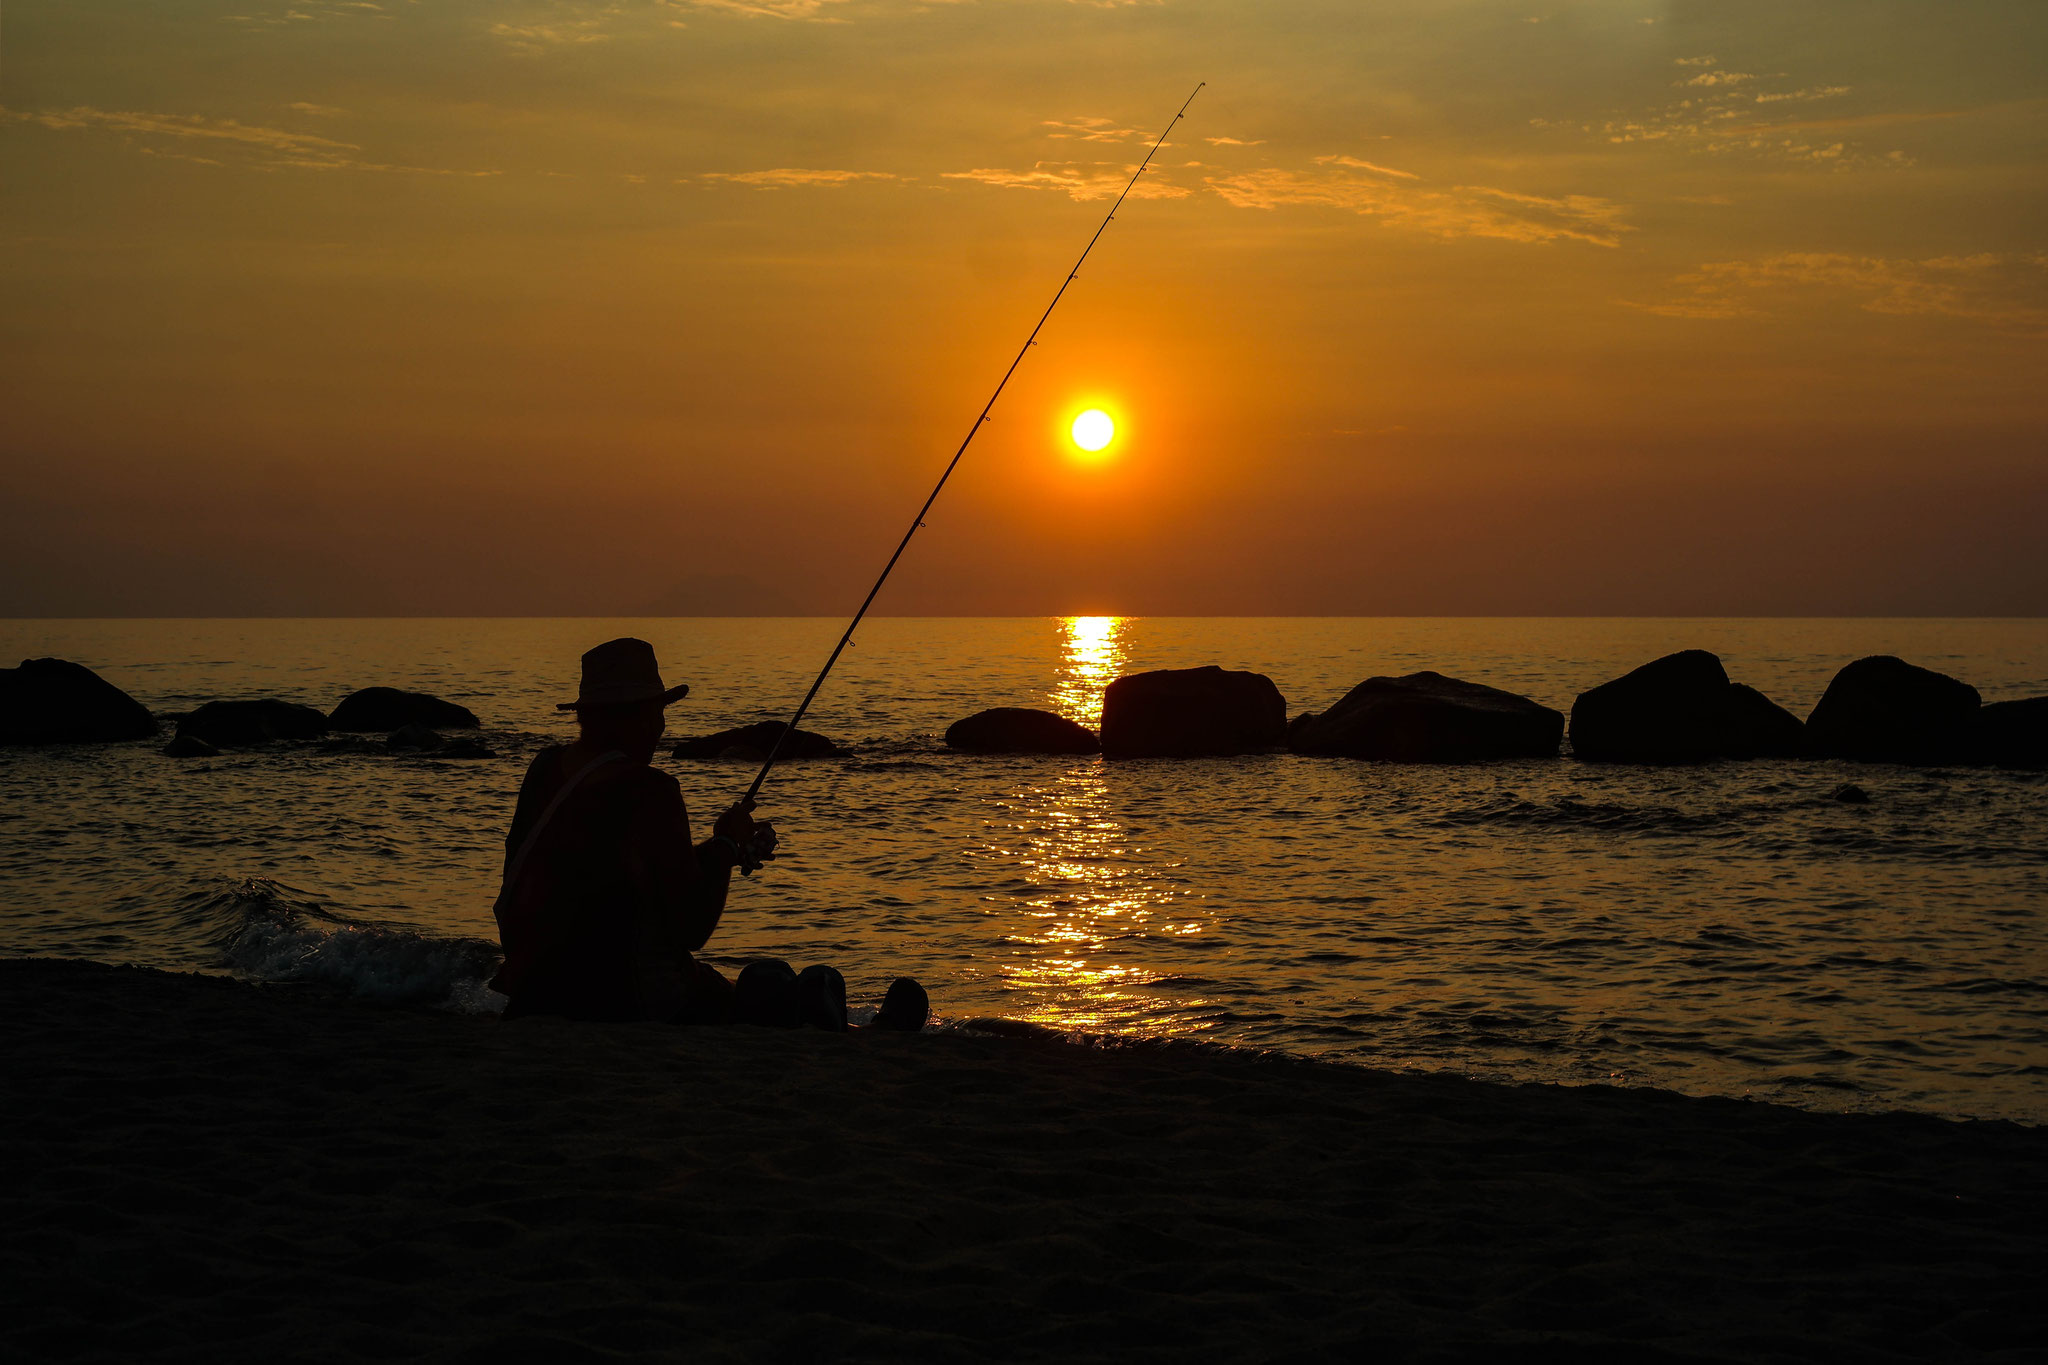 Fisherman sitting on the beach in front of the sea and the sunset